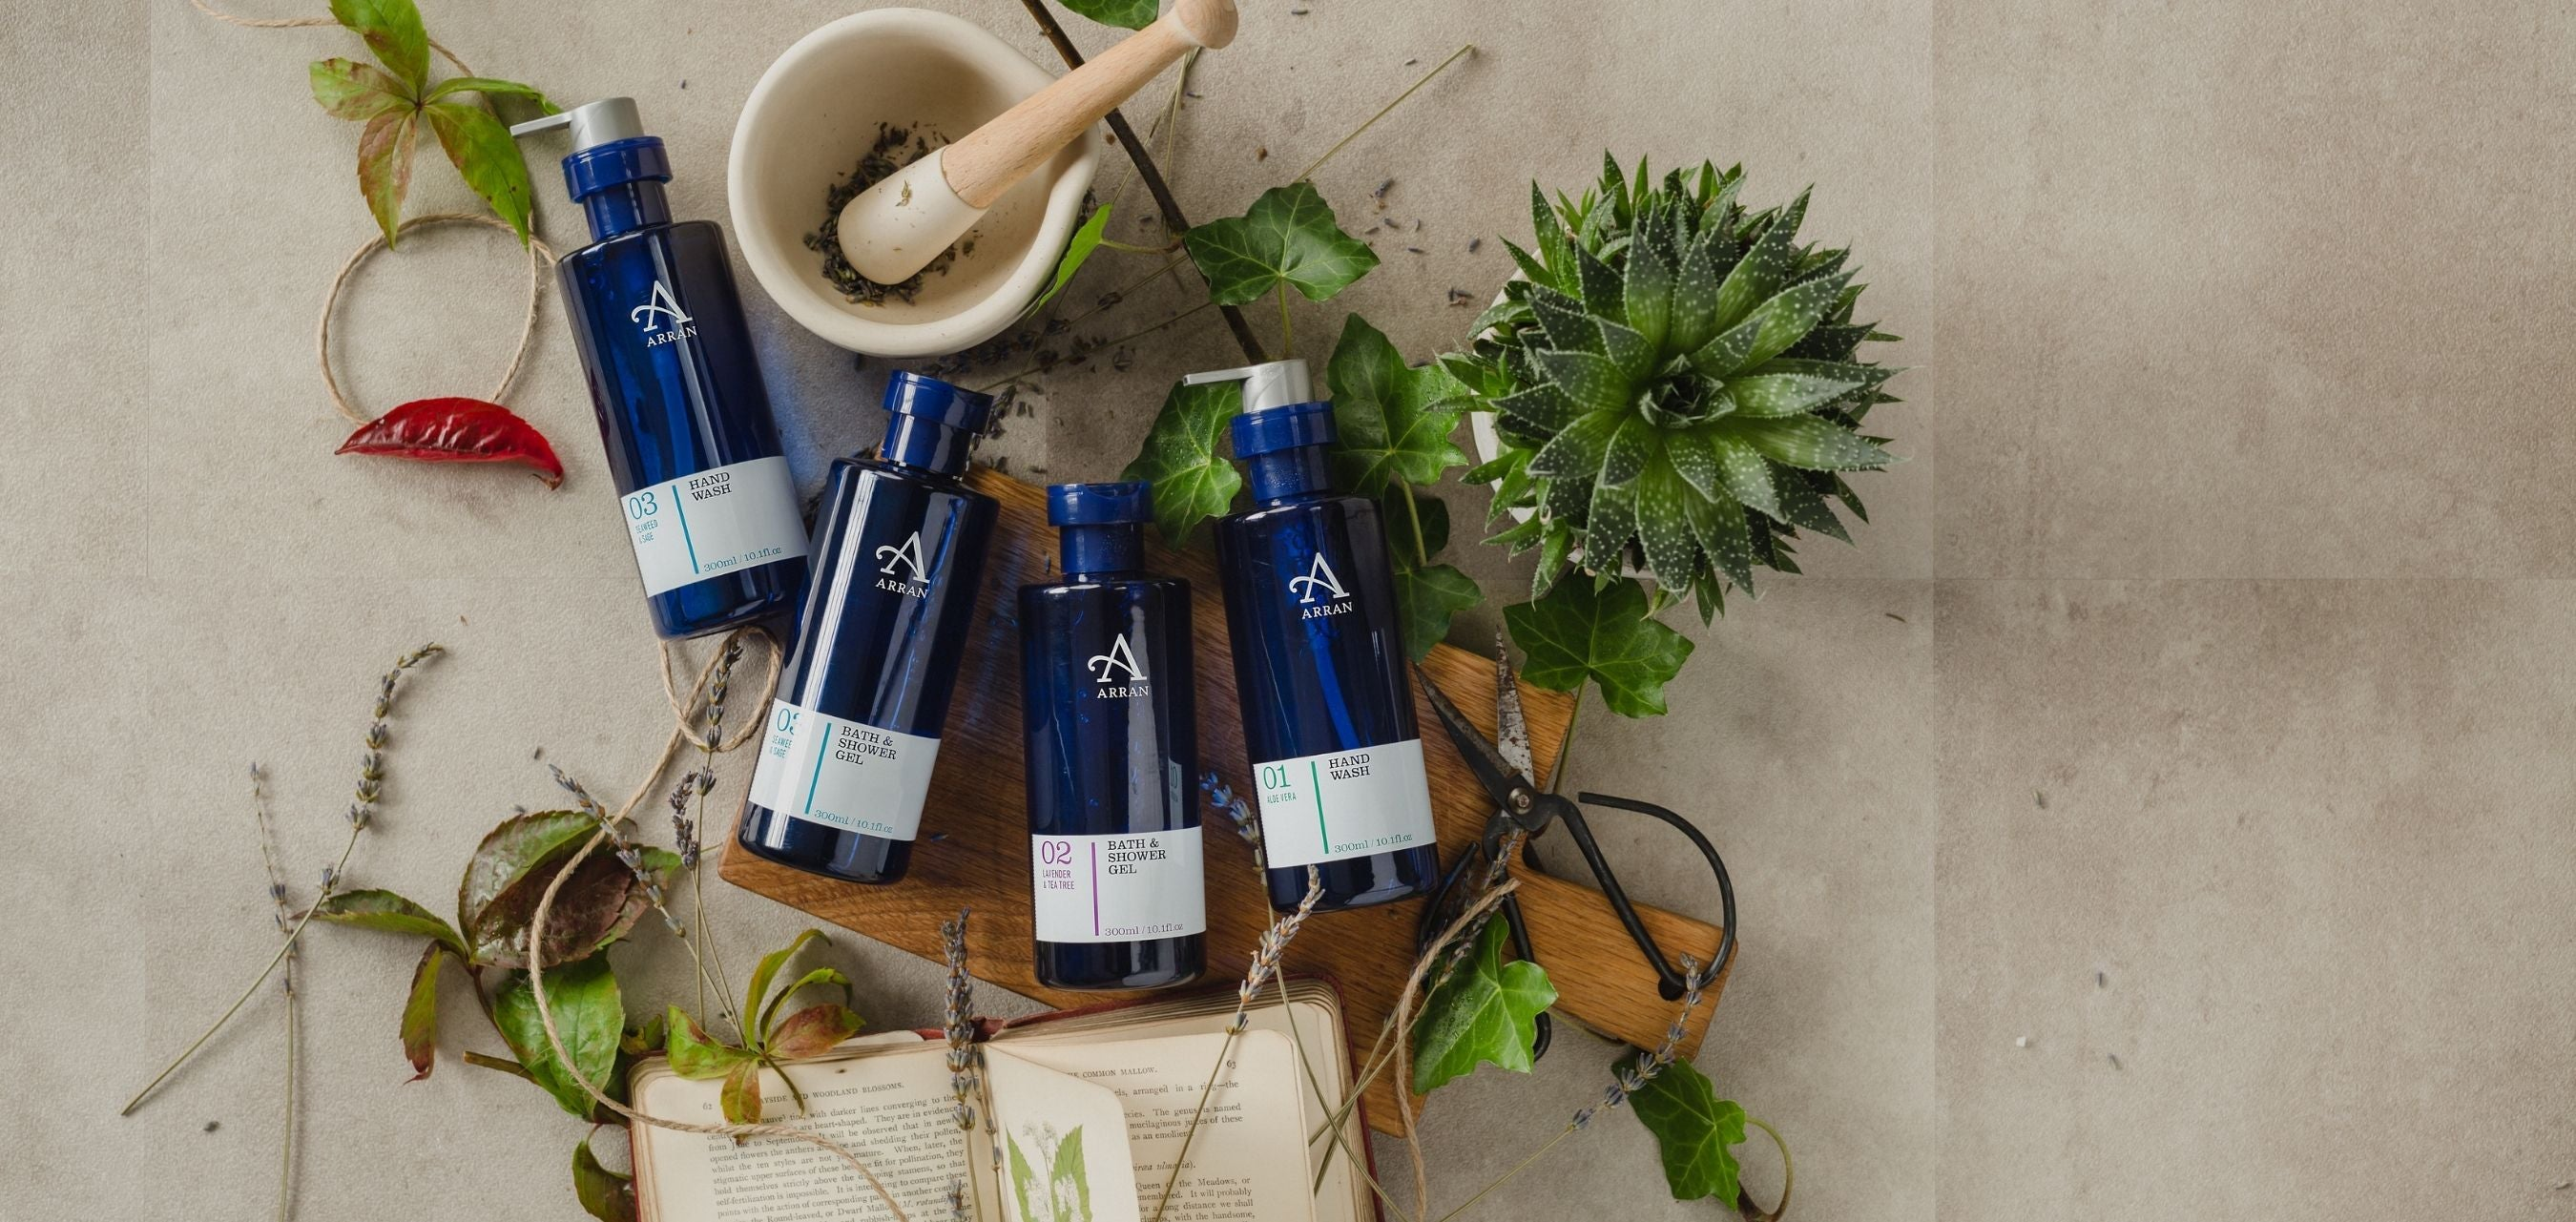 Assorted blue-bottled Hand Washes and Shower Gels with apothecary books.